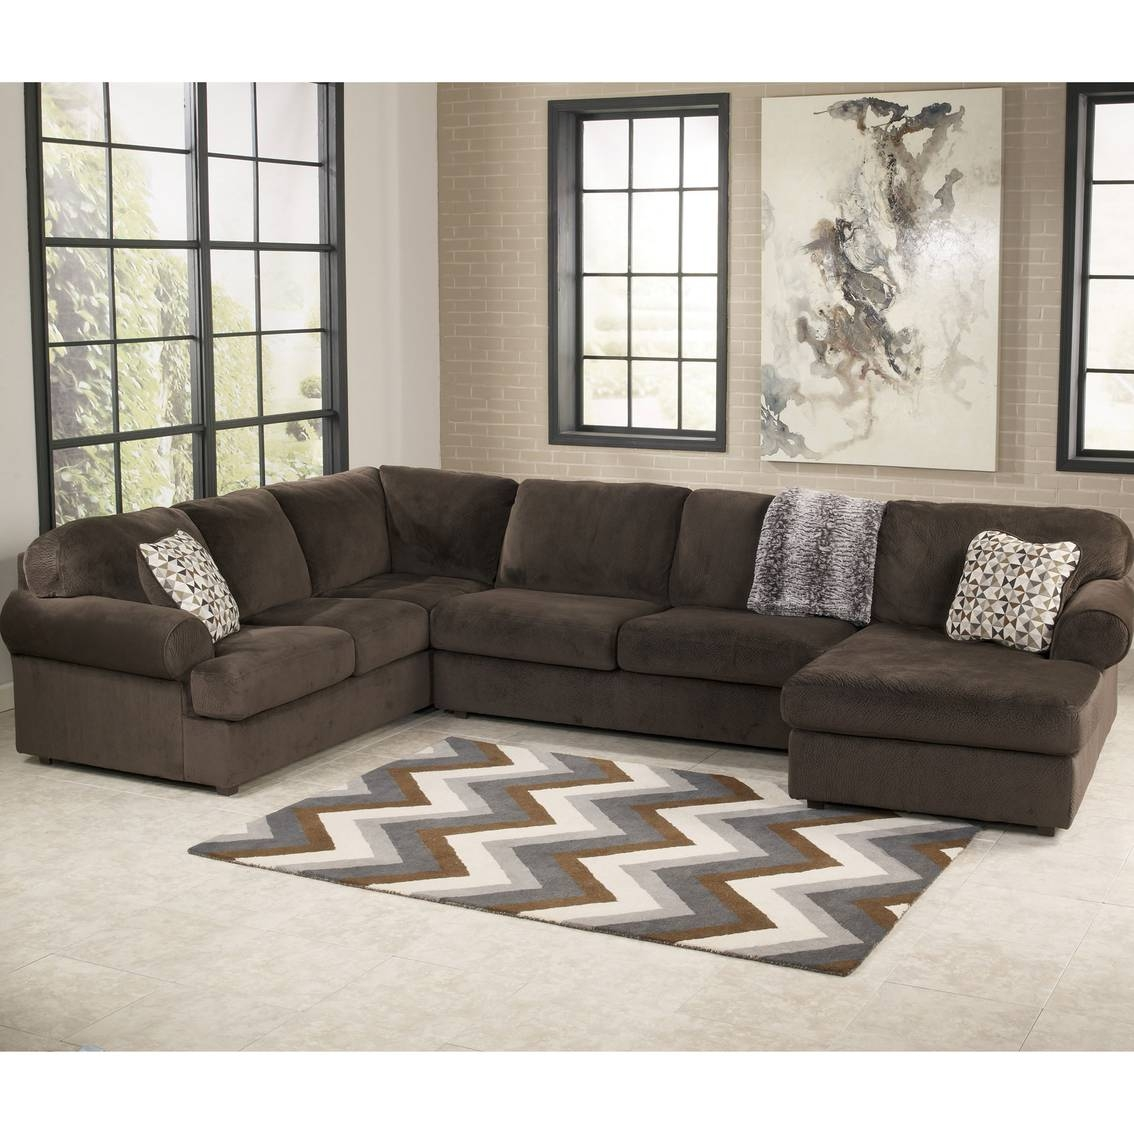 Signature Designashley Jessa Place 3 Pc. Sectional Sofa in Ashley Furniture Leather Sectional Sofas (Image 14 of 15)